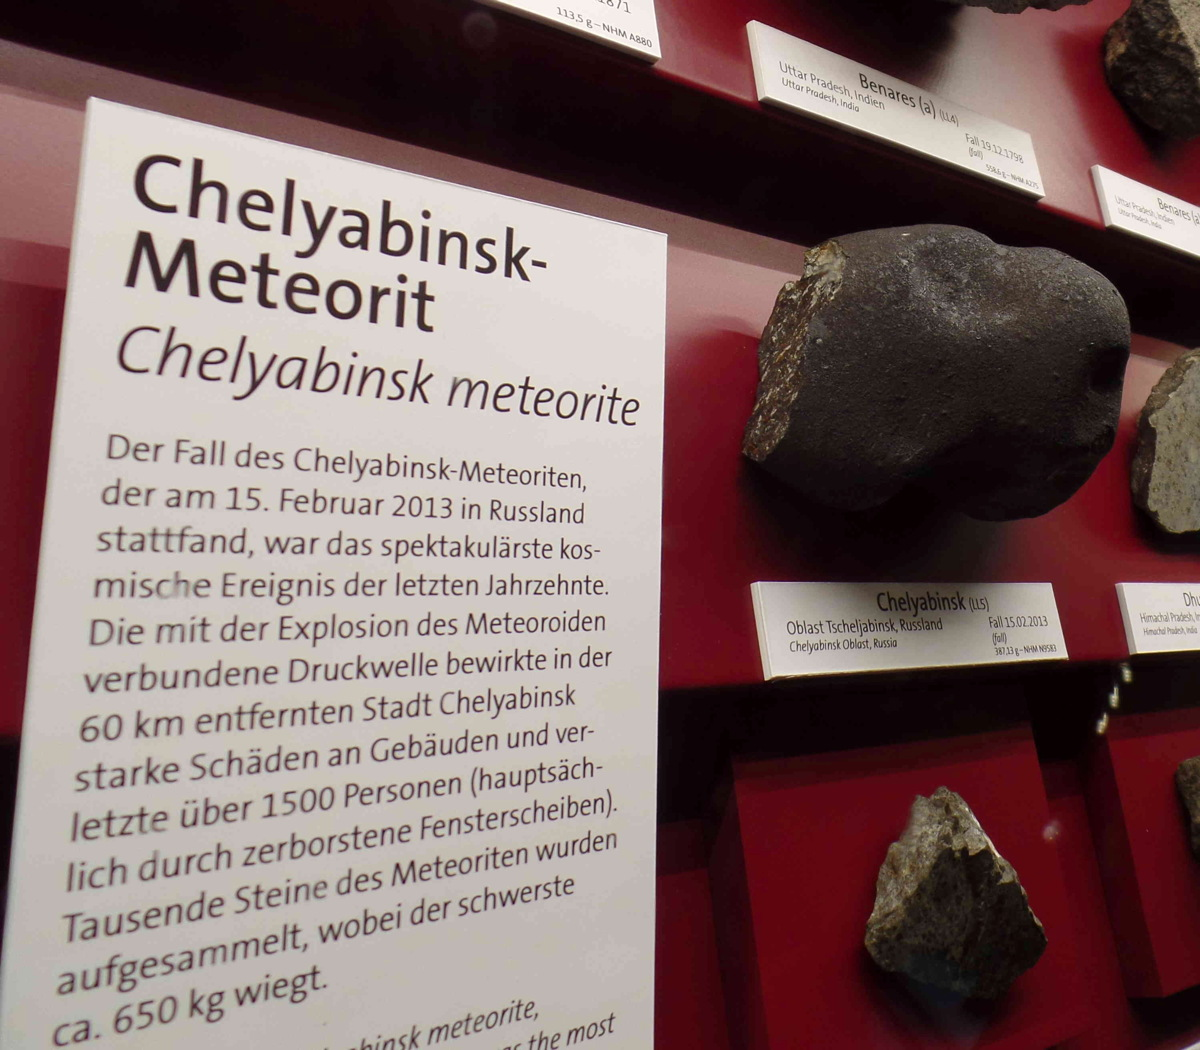 Meteorite Fragments from Russian Fireball on Display 1 Year After Space Rock Explosion